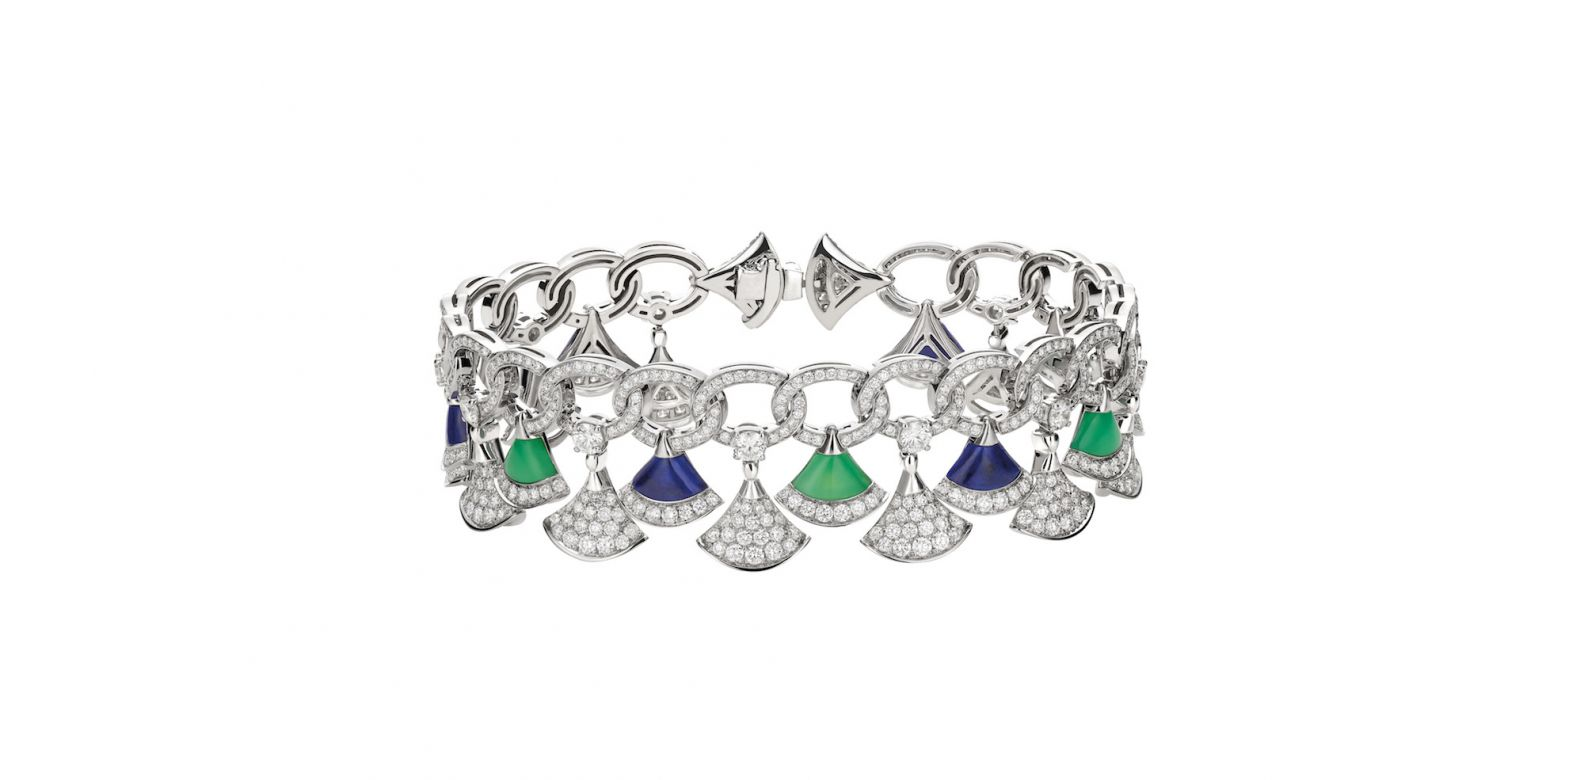 Bracelet in white gold with chrysoprase and lapis lazuli and diamonds (4.97cts)